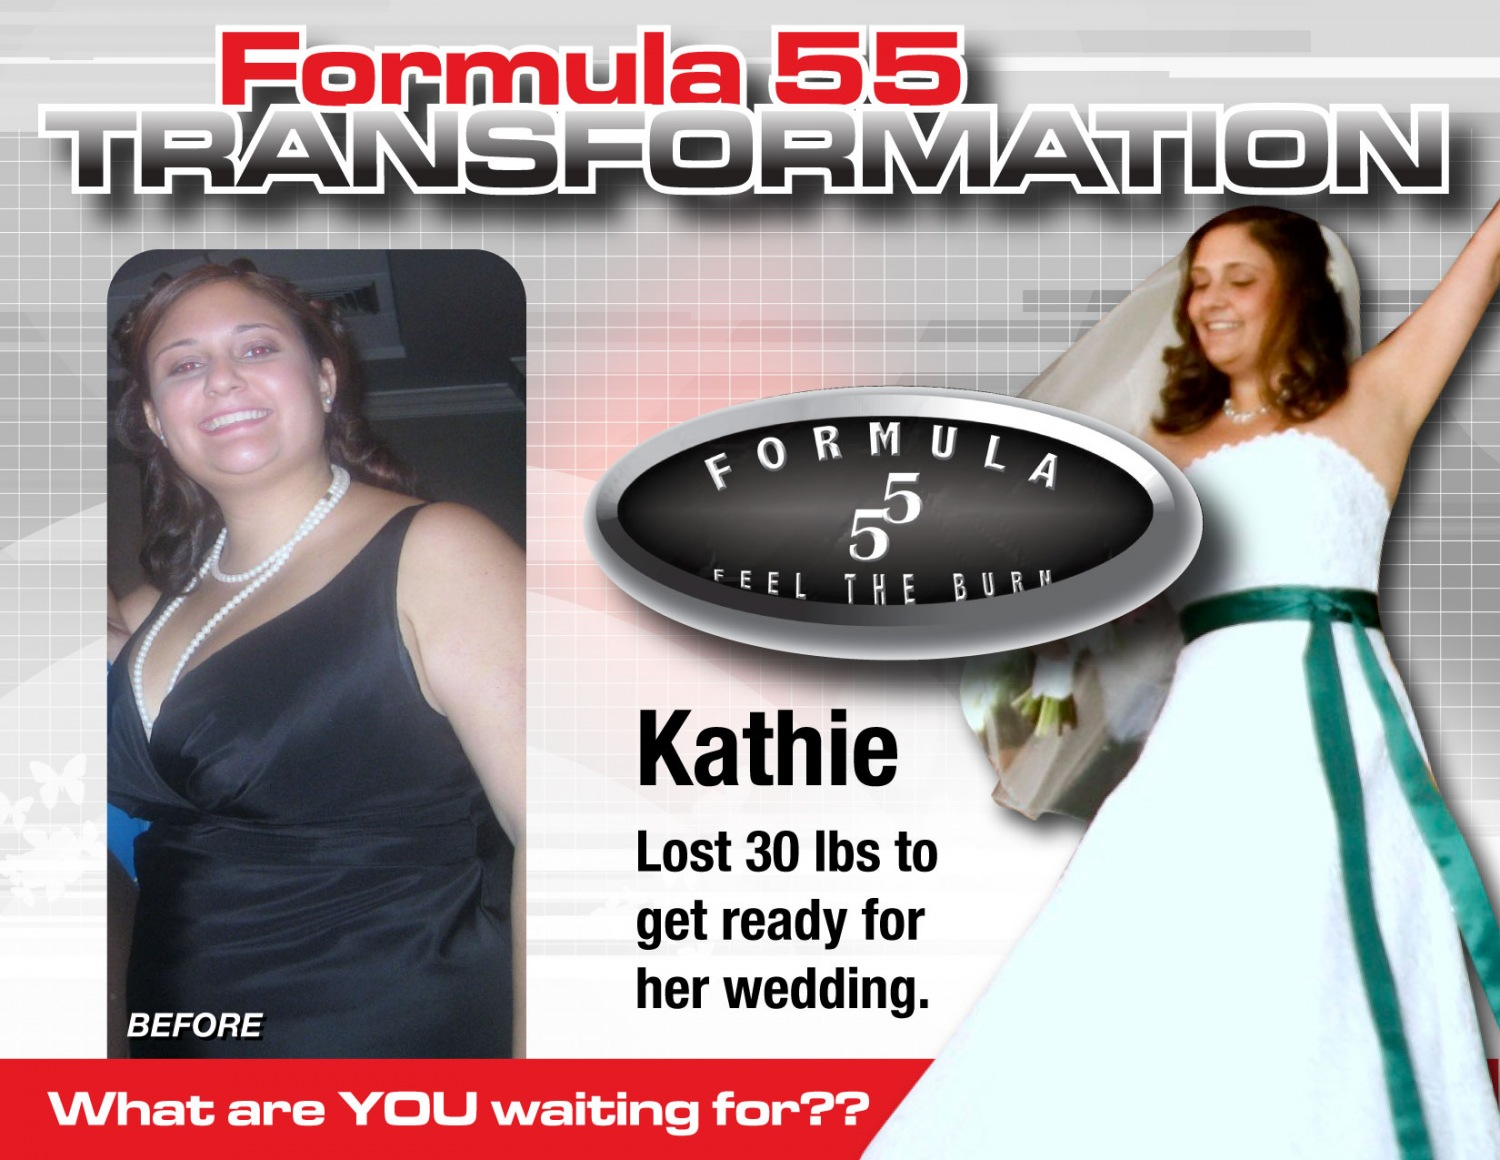 form-55-Transformation-Kathie.jpg